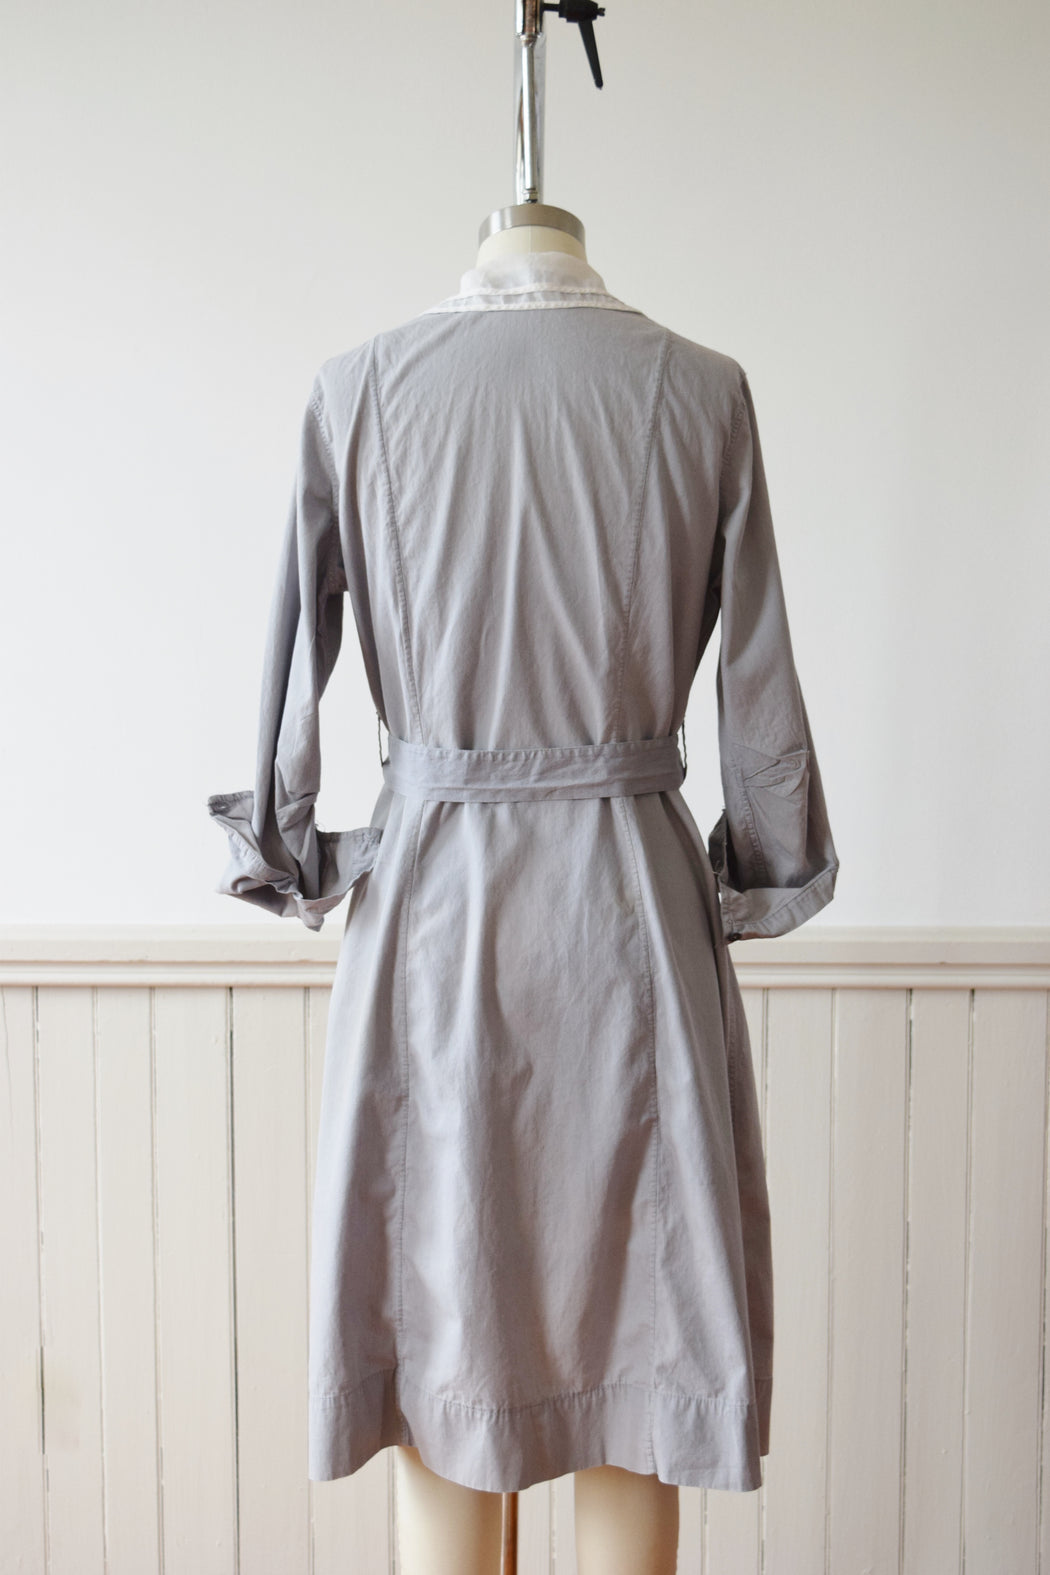 1920s Domestic Worker's Lavender Smock Dress